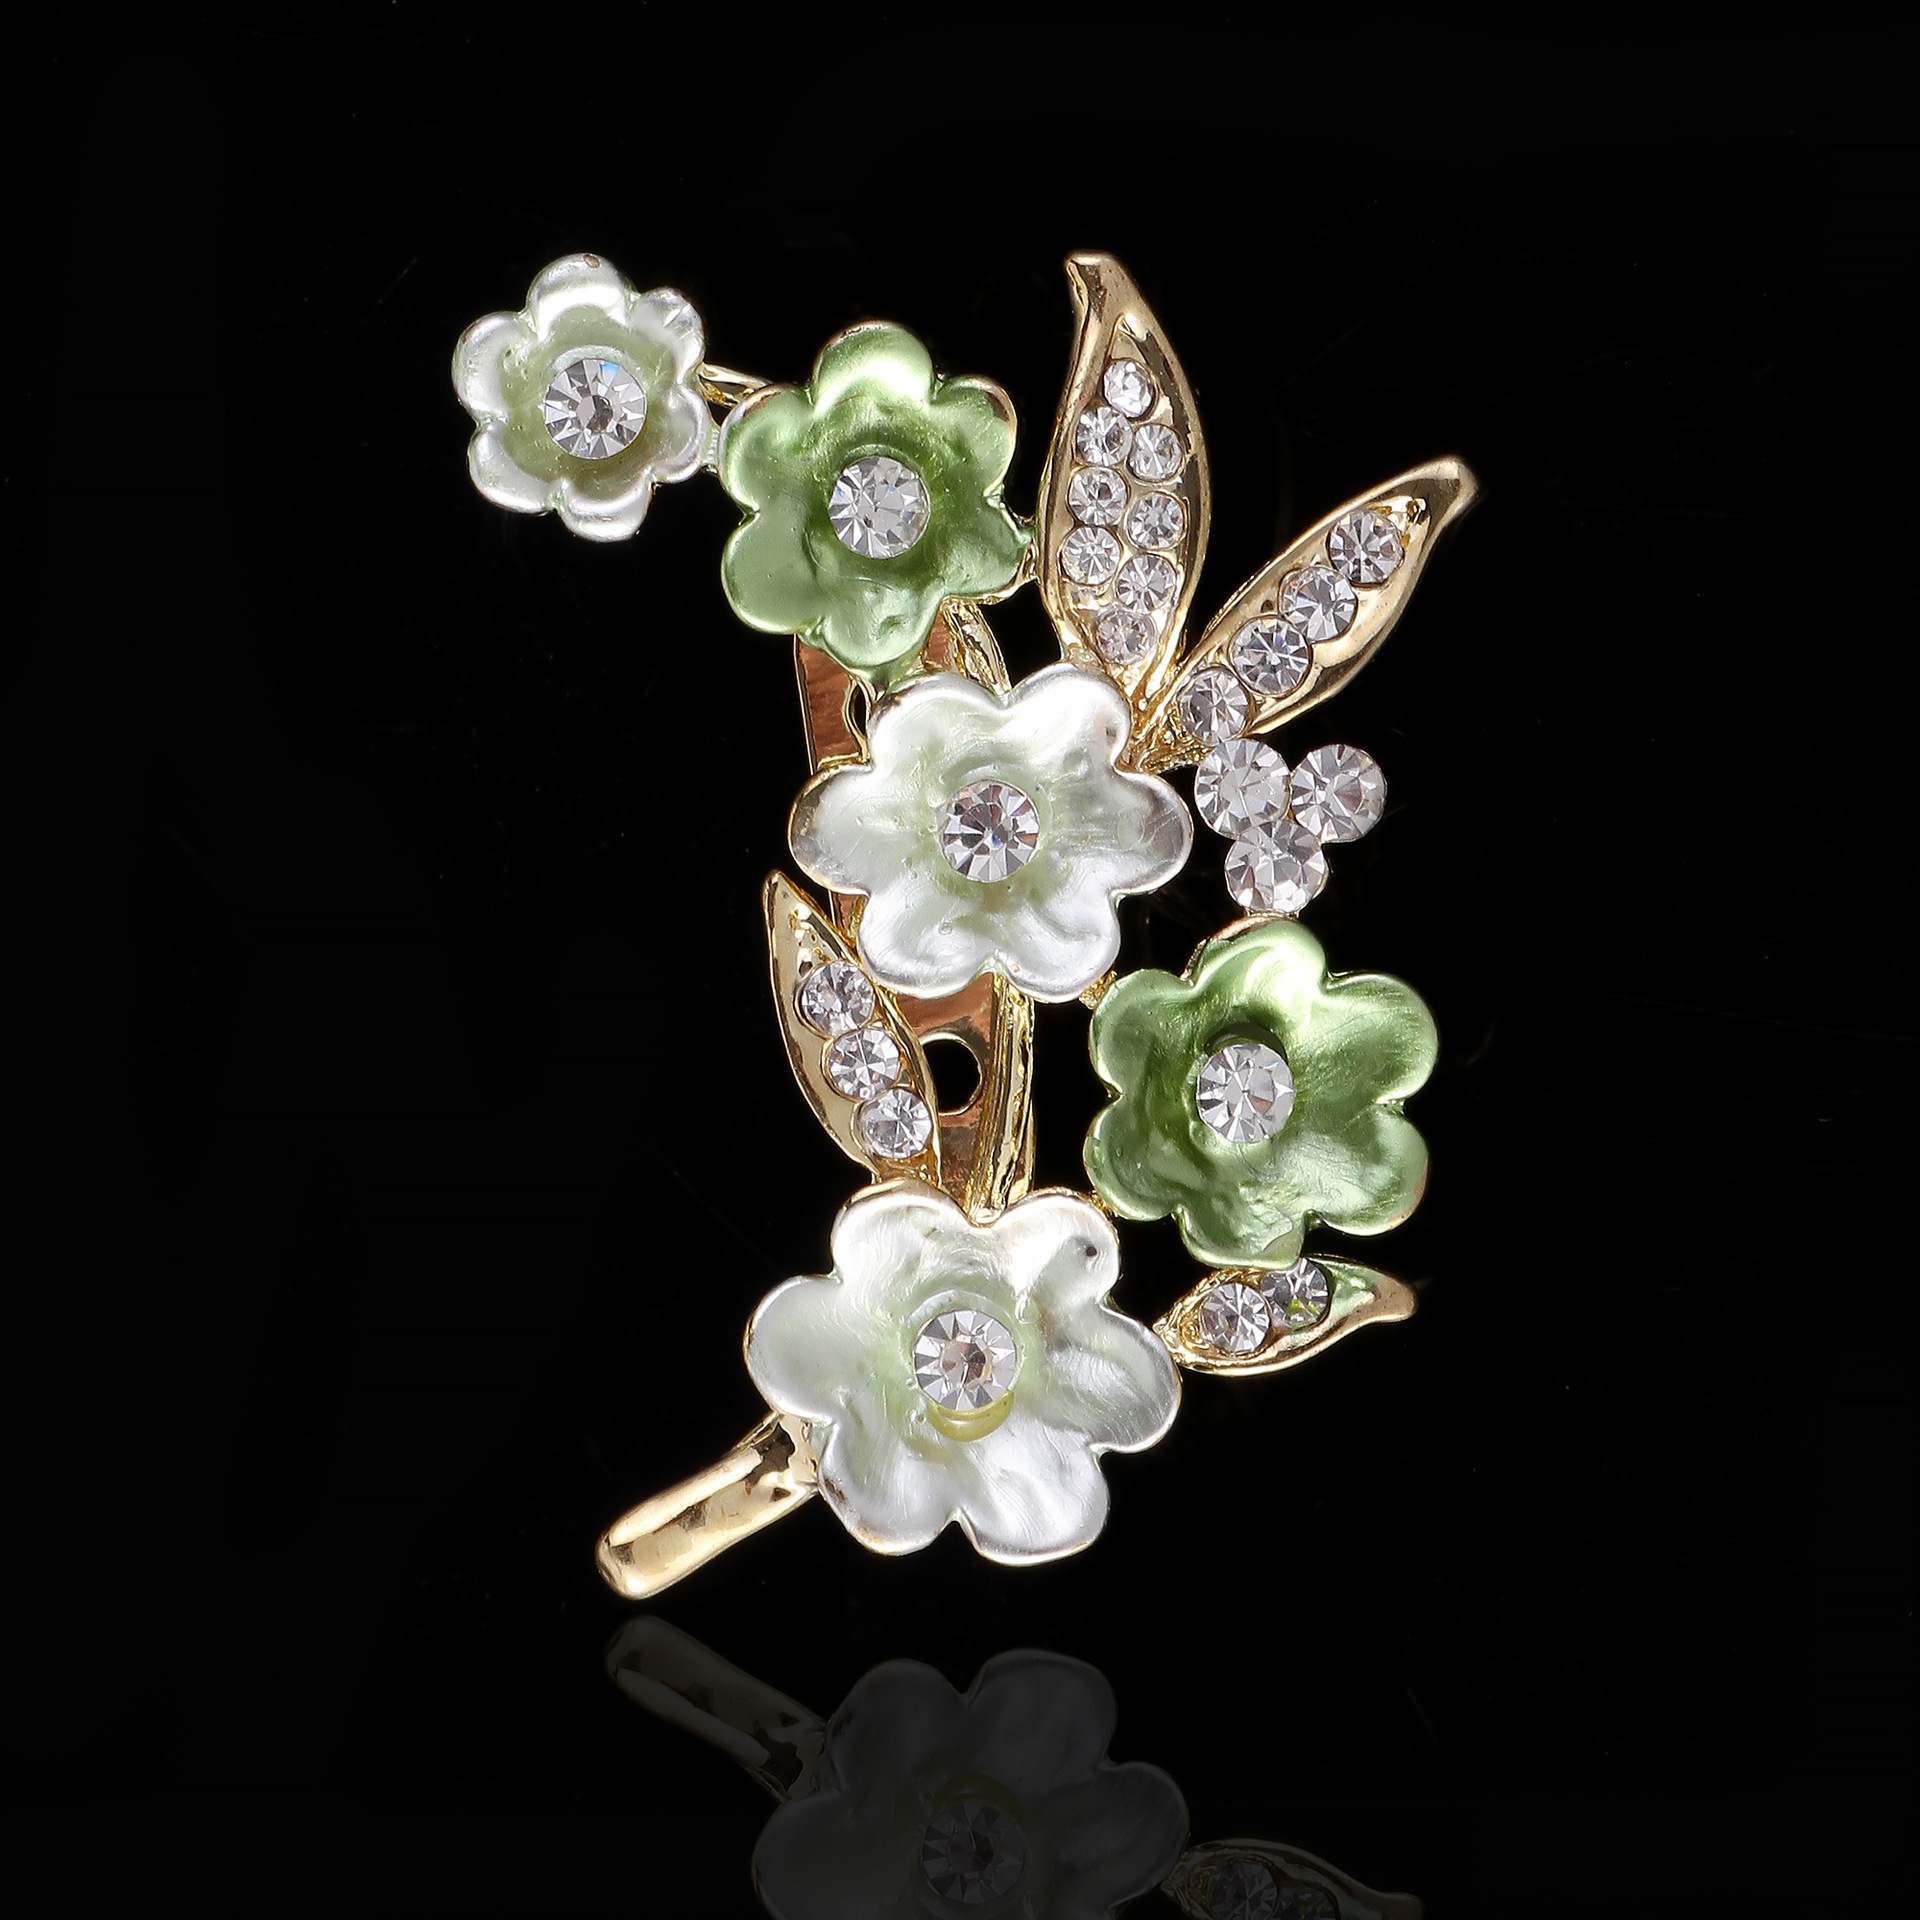 3 pcs a lot <font><b>new</b></font> <font><b>arrival</b></font> purple <font><b>white</b></font> <font><b>green</b></font> <font><b>flower</b></font> brooches resin stone crystal brooches fashion women jewelry clothes accessory